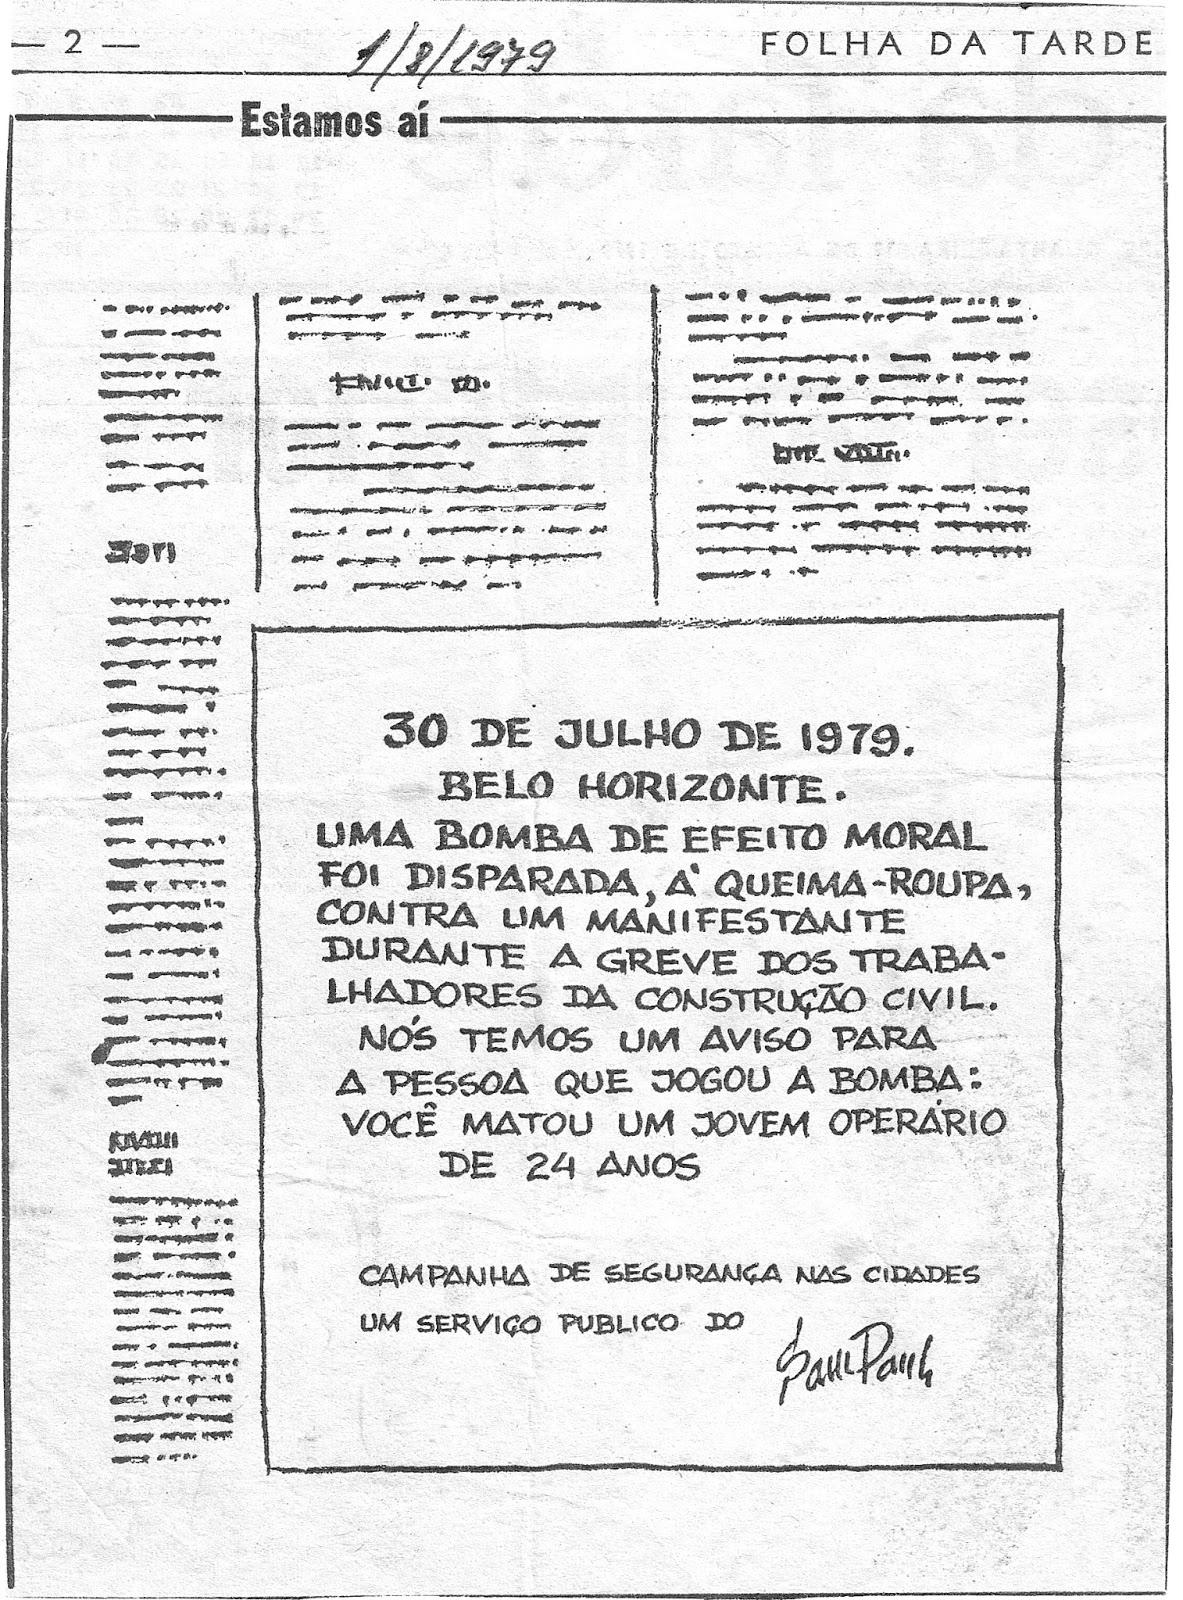 D:\VINICIUS\Pictures\Outras Imagens\HQ\Tiras-Charges\Sampaulo\Sampaulo_Folha da Tarde_1Ago1979.jpg